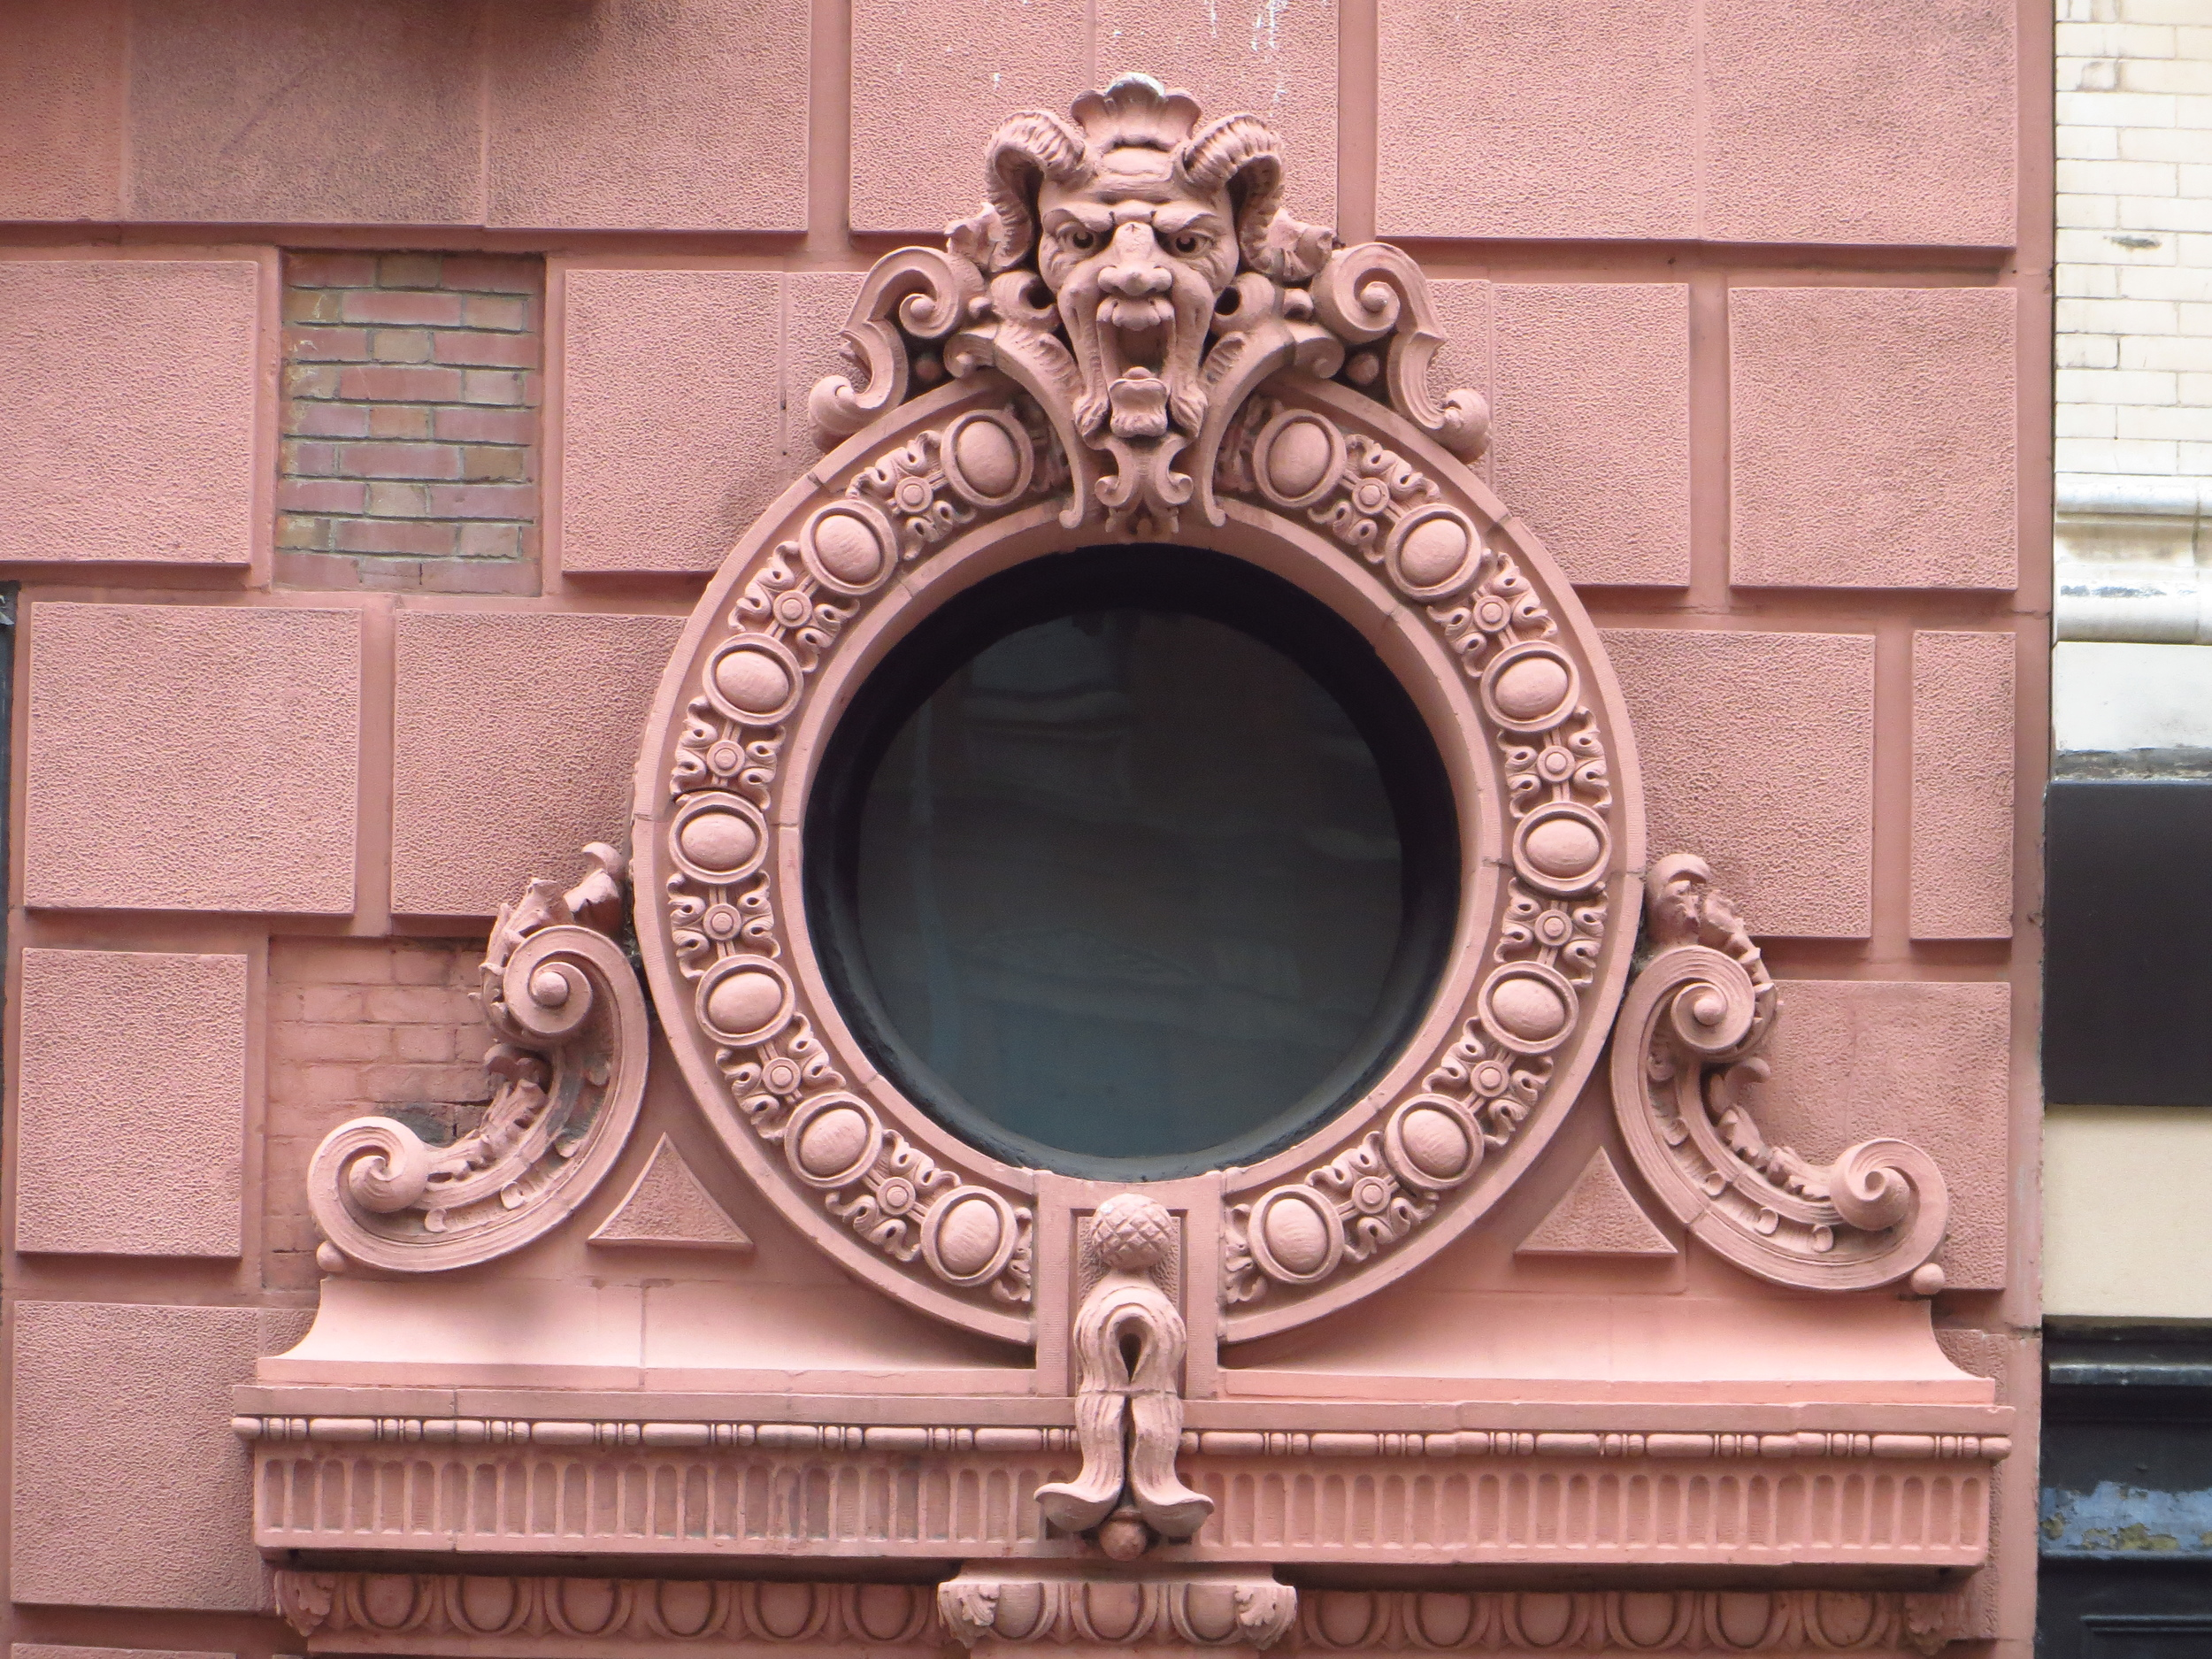 Window and face